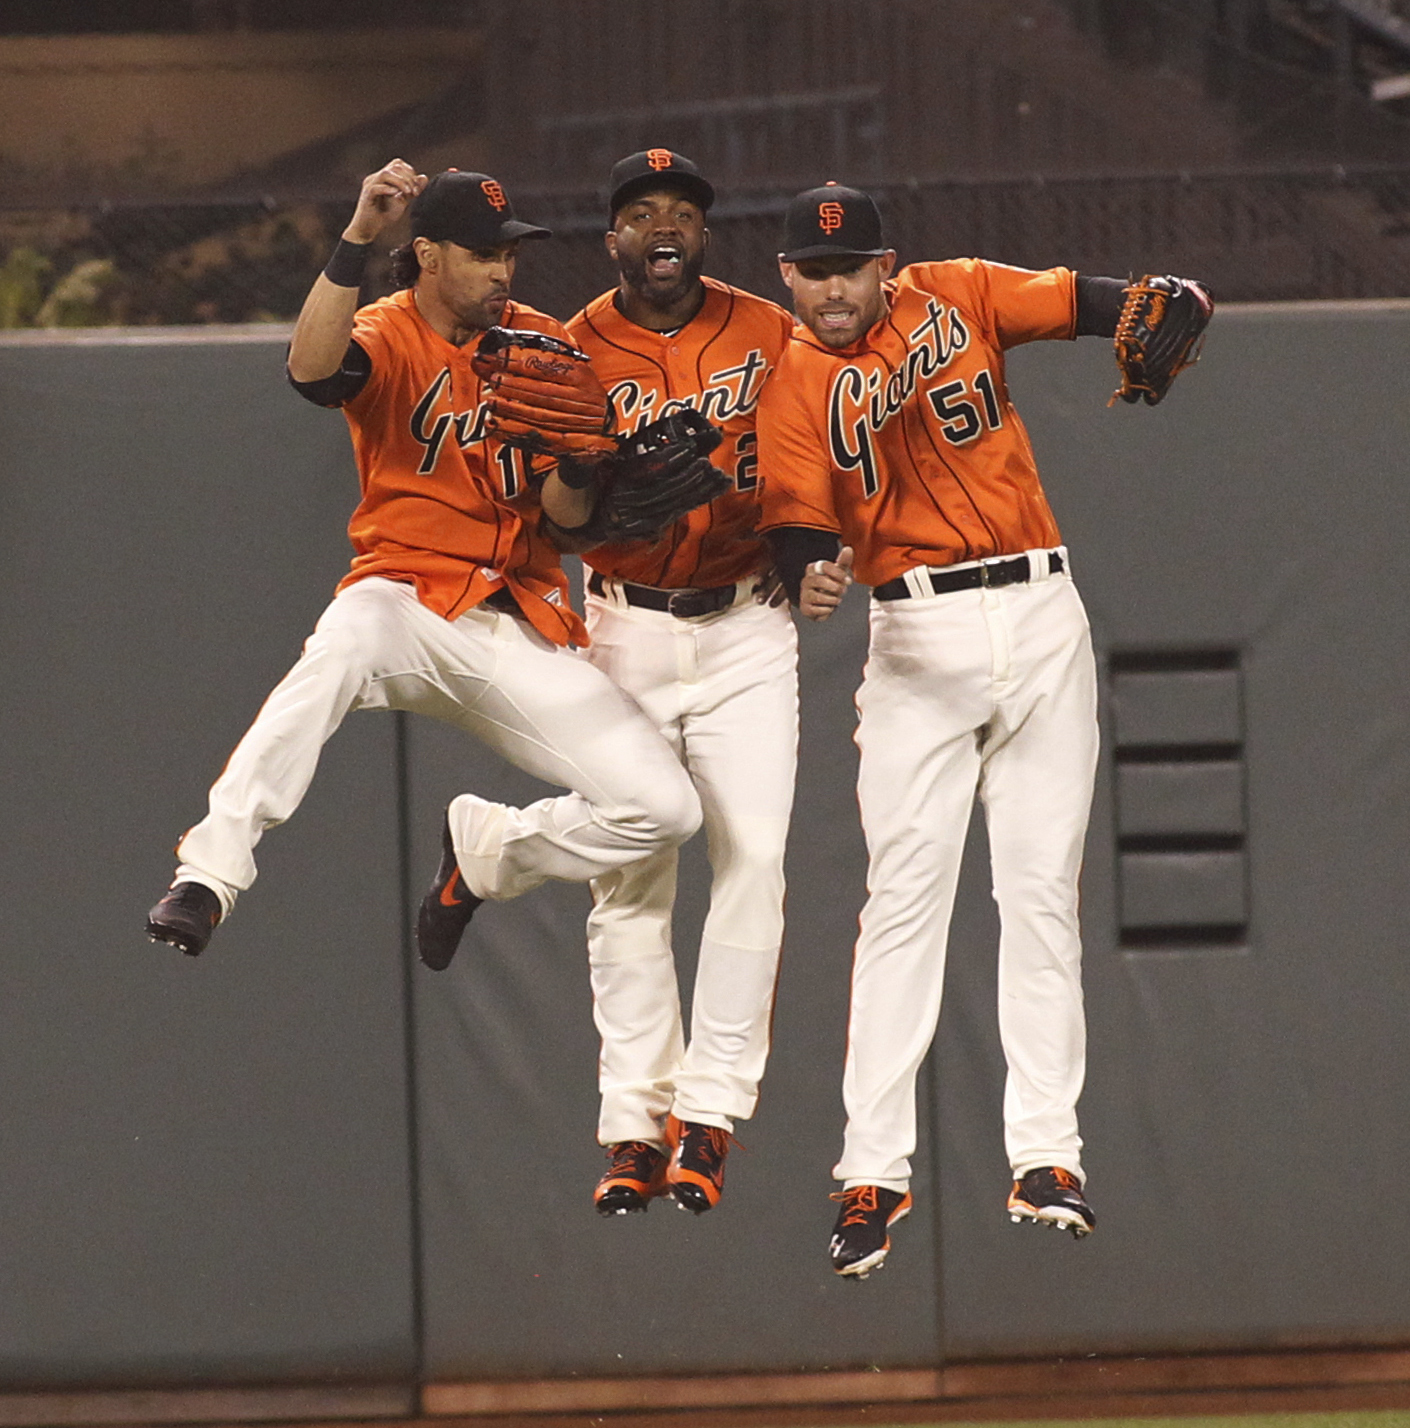 San Francisco Giants outfielders, from left, Angel Pagan, Denard Span and Mac Williamson jump after the team's baseball game against the Arizona Diamondbacks, Friday, July 8, 2016, in San Francisco. The Giants won 6-2. (AP Photo/George Nikitin)